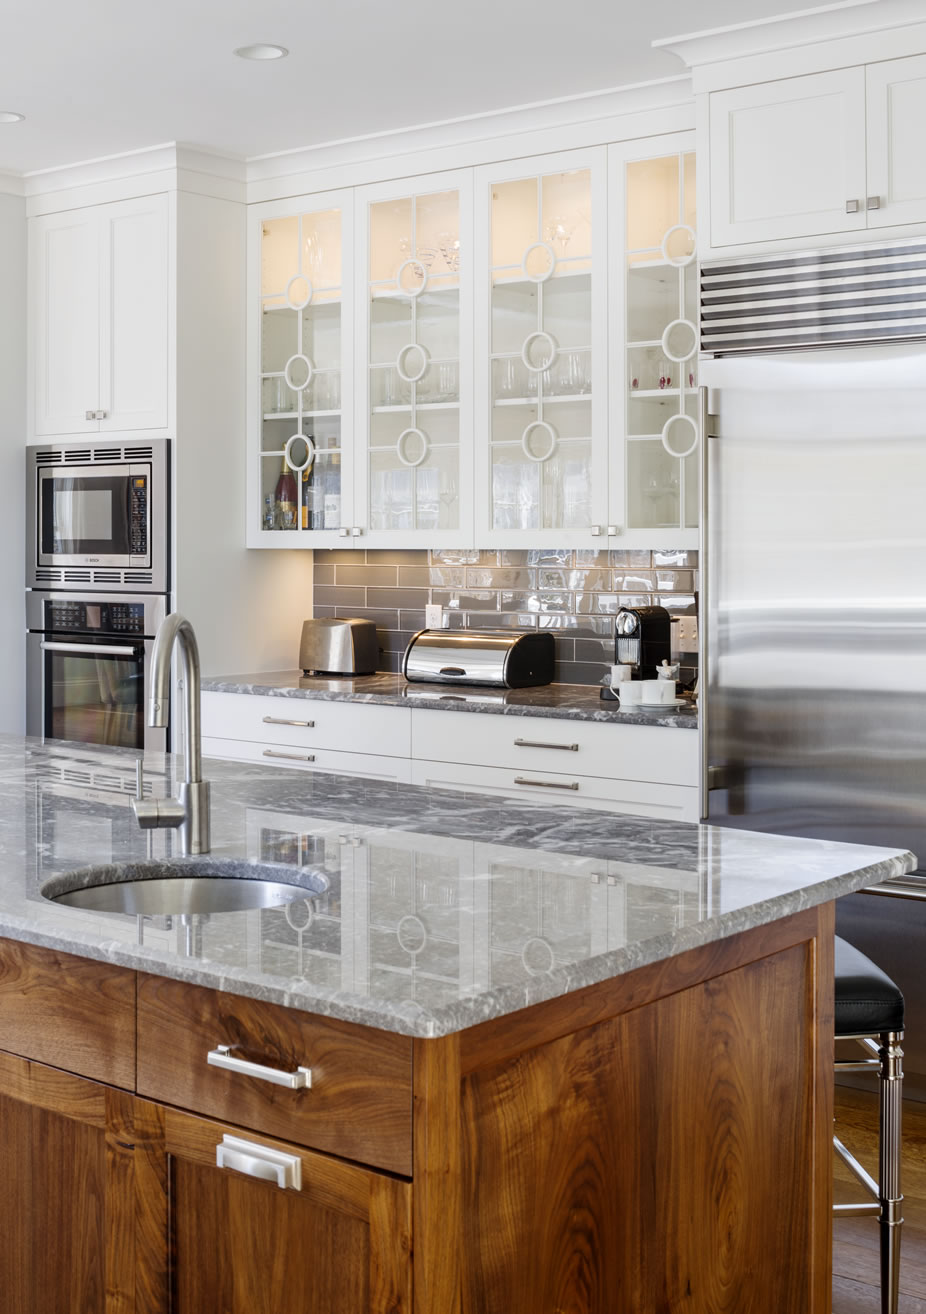 Newton Kitchens & Design - Cushing Rd. - Kitchen